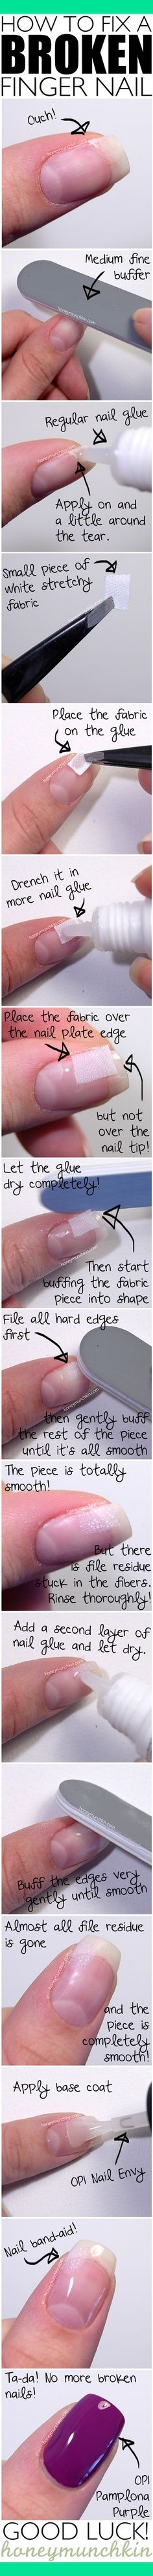 How to fix a broken nail!